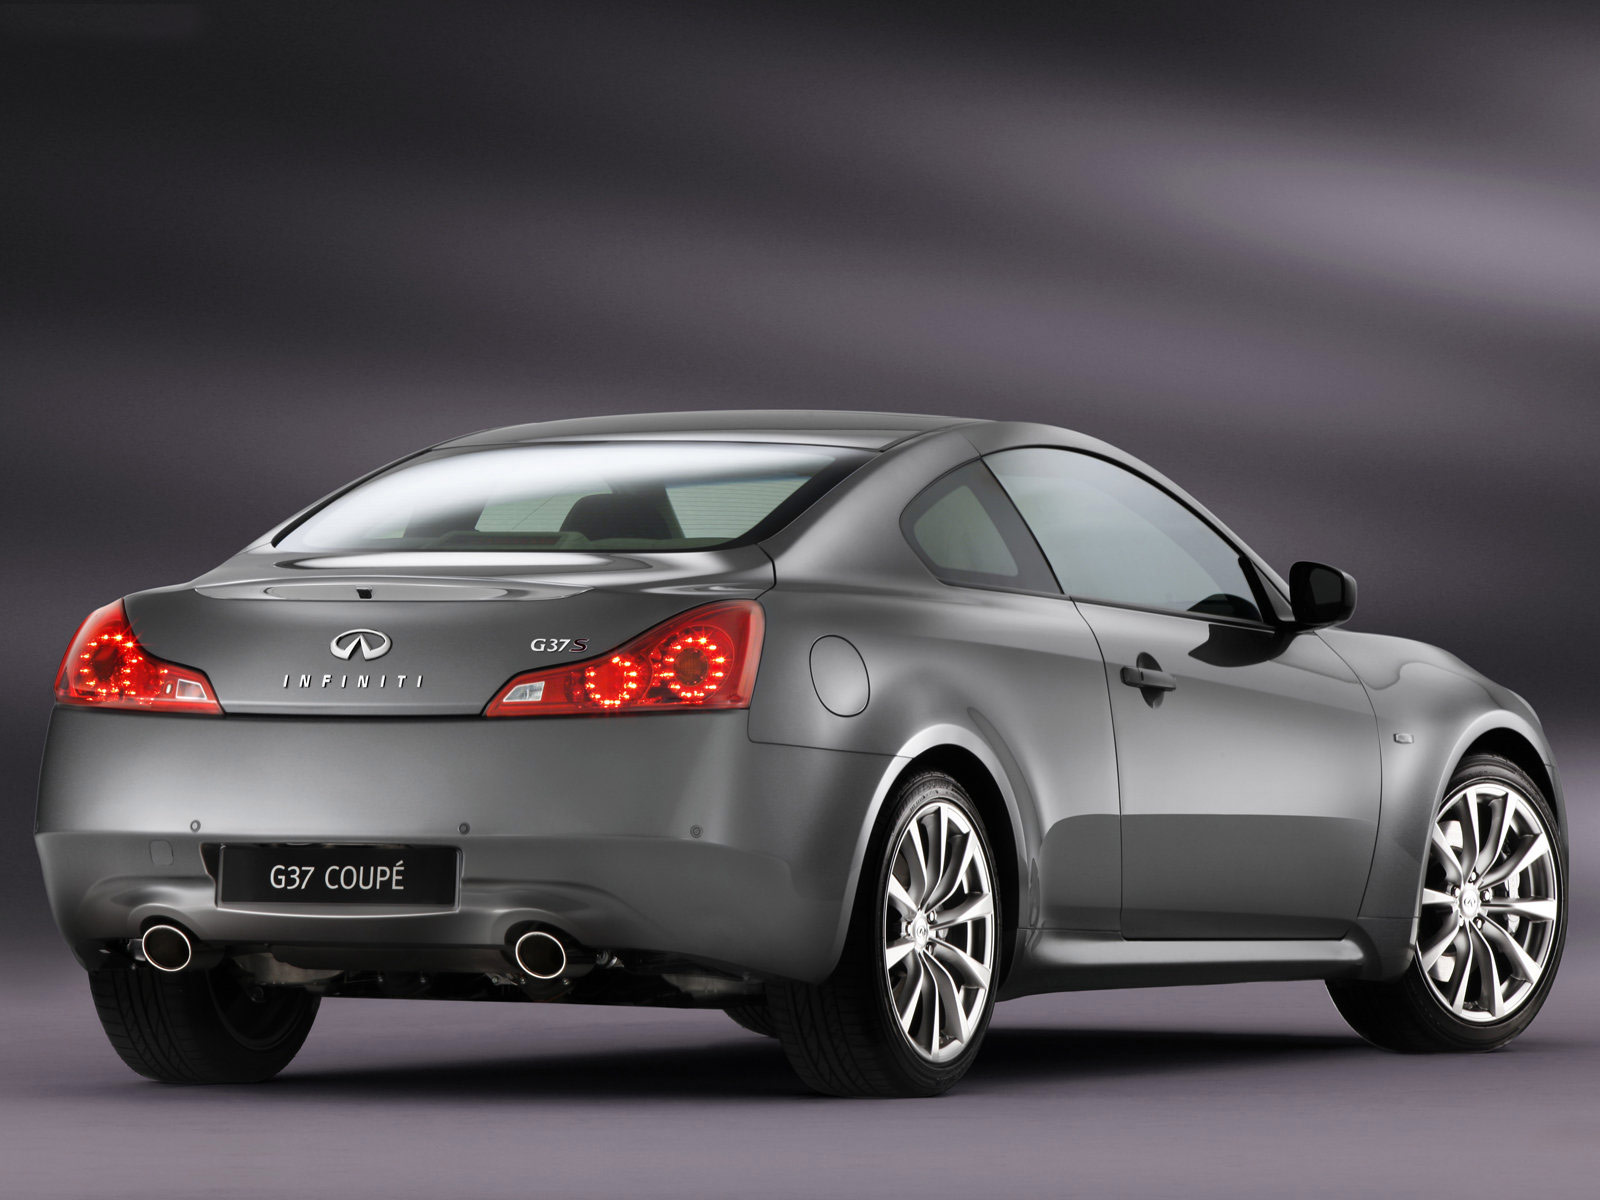 INFINITI G37 Coupe Car Pictures 2008